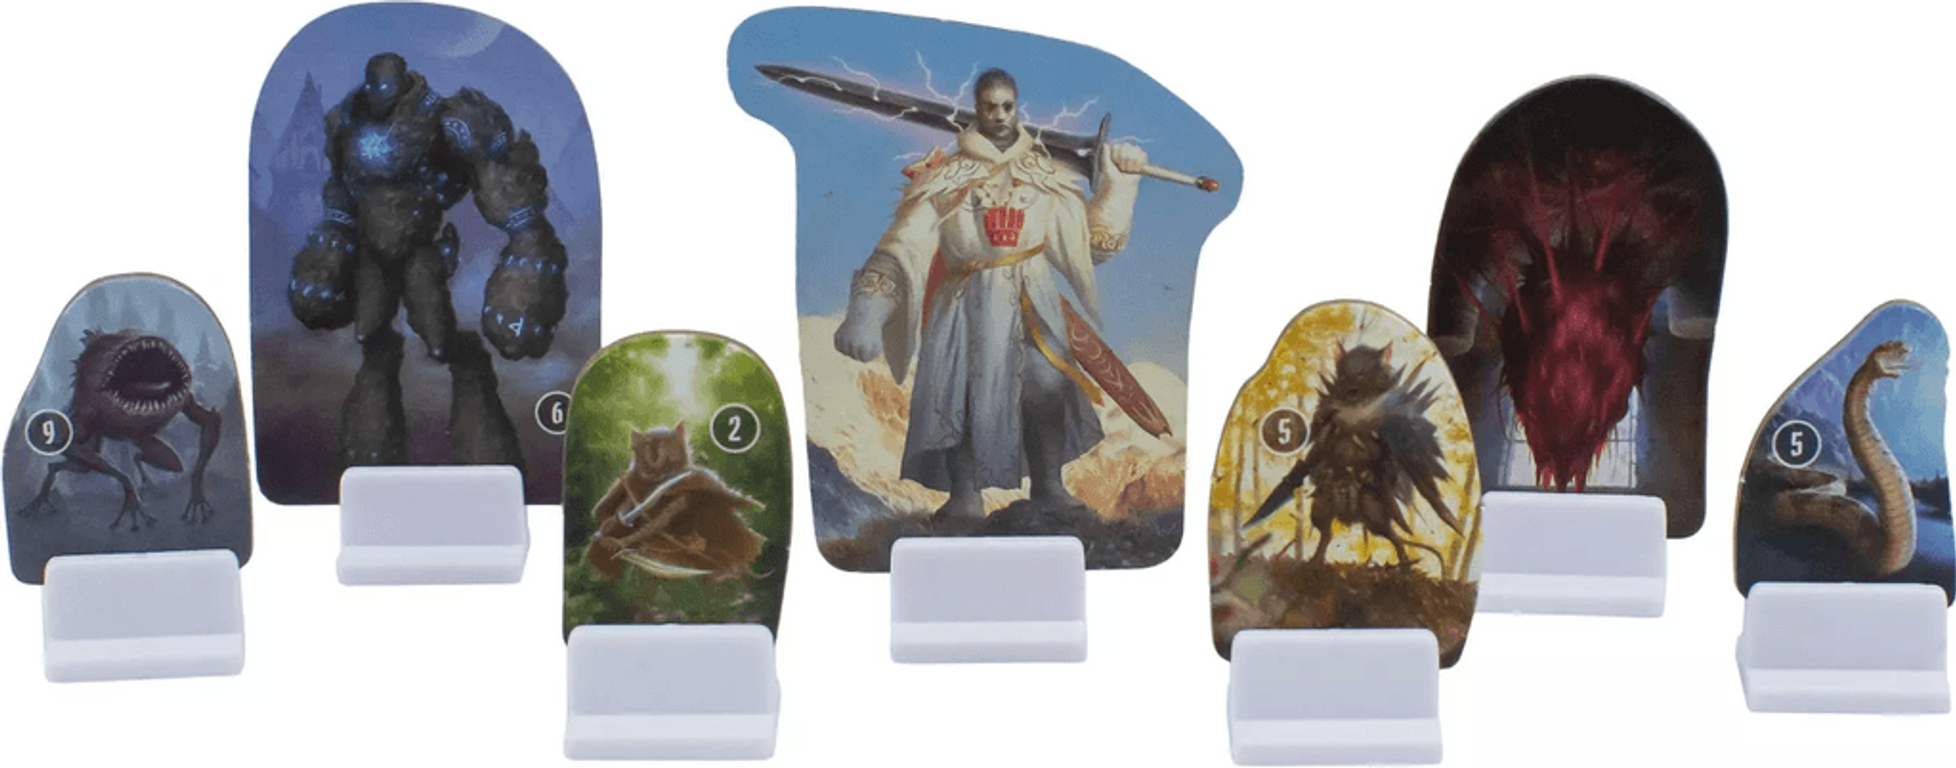 Gloomhaven: Jaws of the Lion components